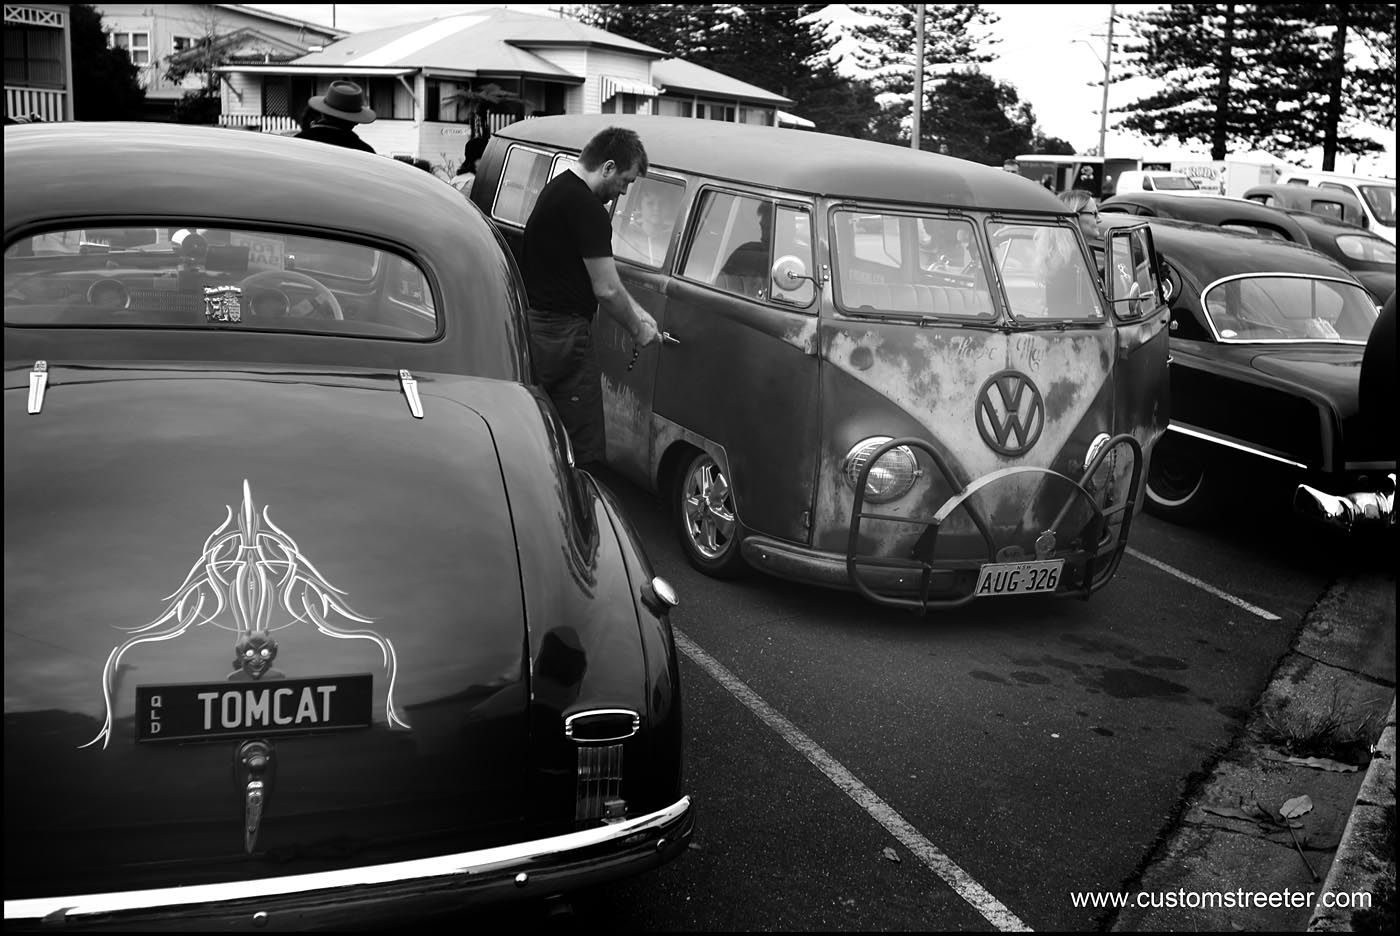 Brunswick Heads NSW, Australia host the Back to Bruns Hot Rod show. Hot Rods, American and Australian vintage Muscle and other Customs - VW, Volkswagen splitscreen 'rat Bus' Safari windows